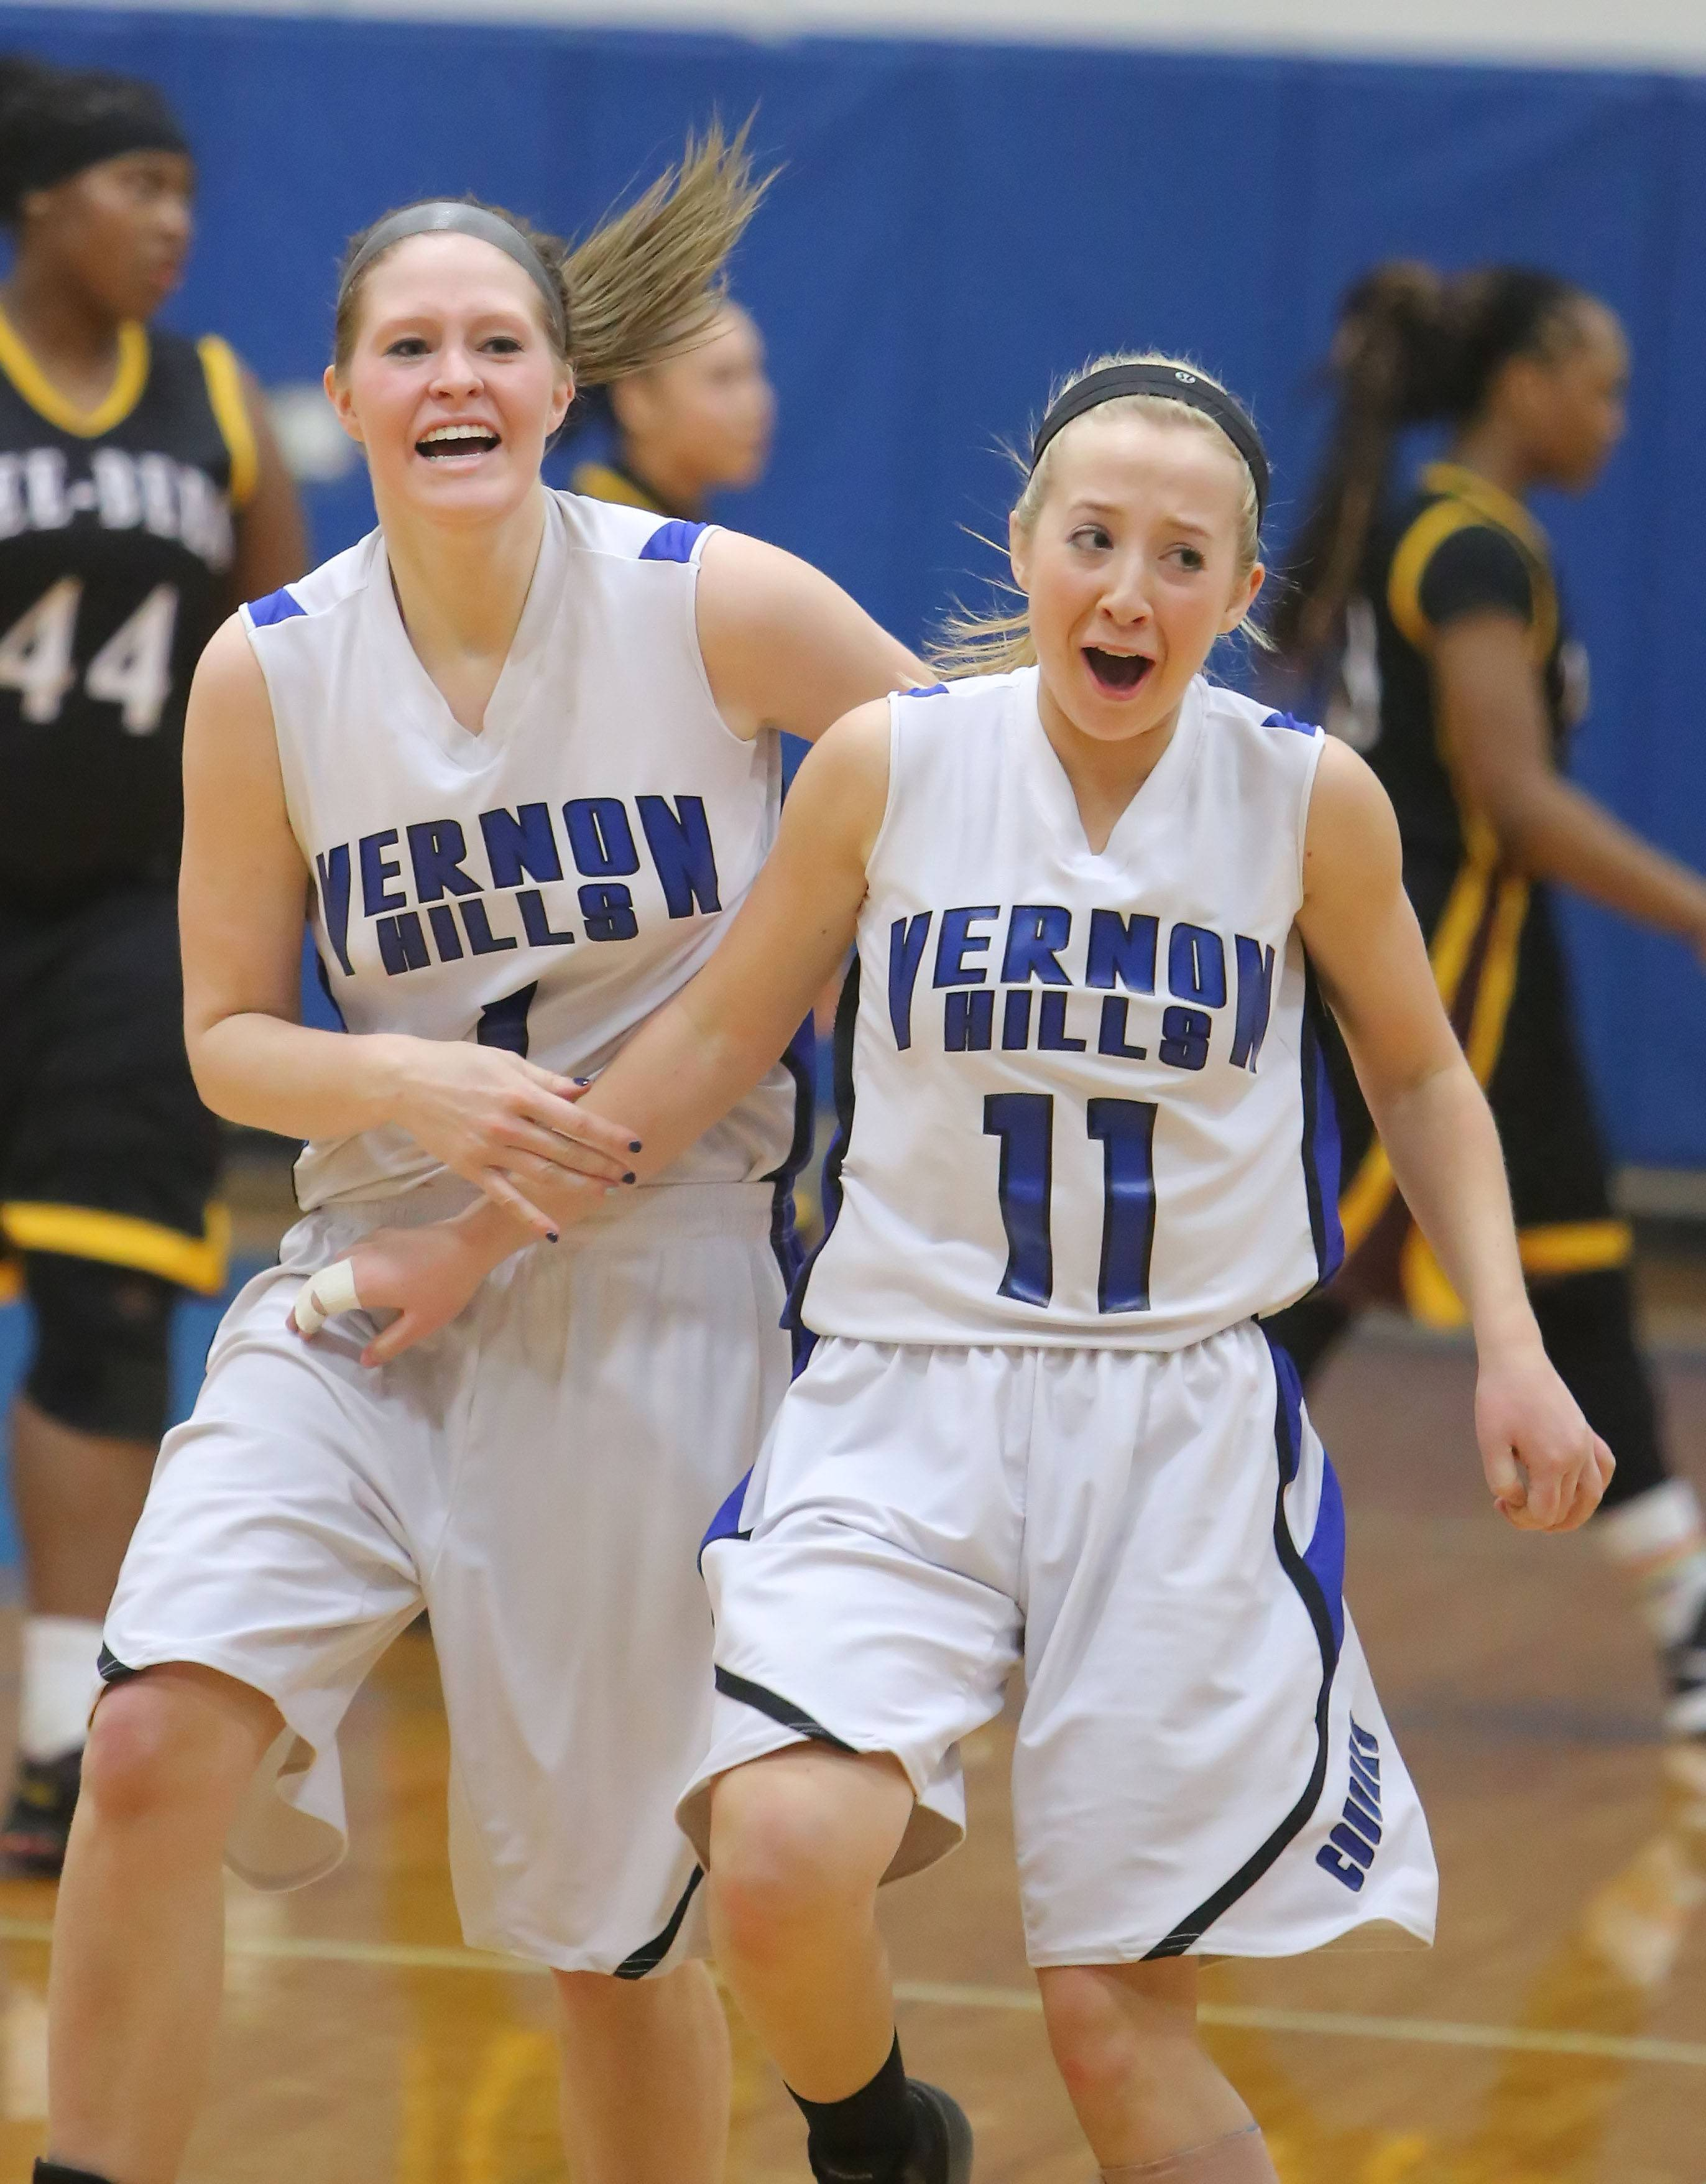 Vernon Hills' Sydney Smith, left, and Haley Lieberman celebrate after beating Zion-Benton to win the North Suburban Conference championship Wednesday night in Vernon Hills.